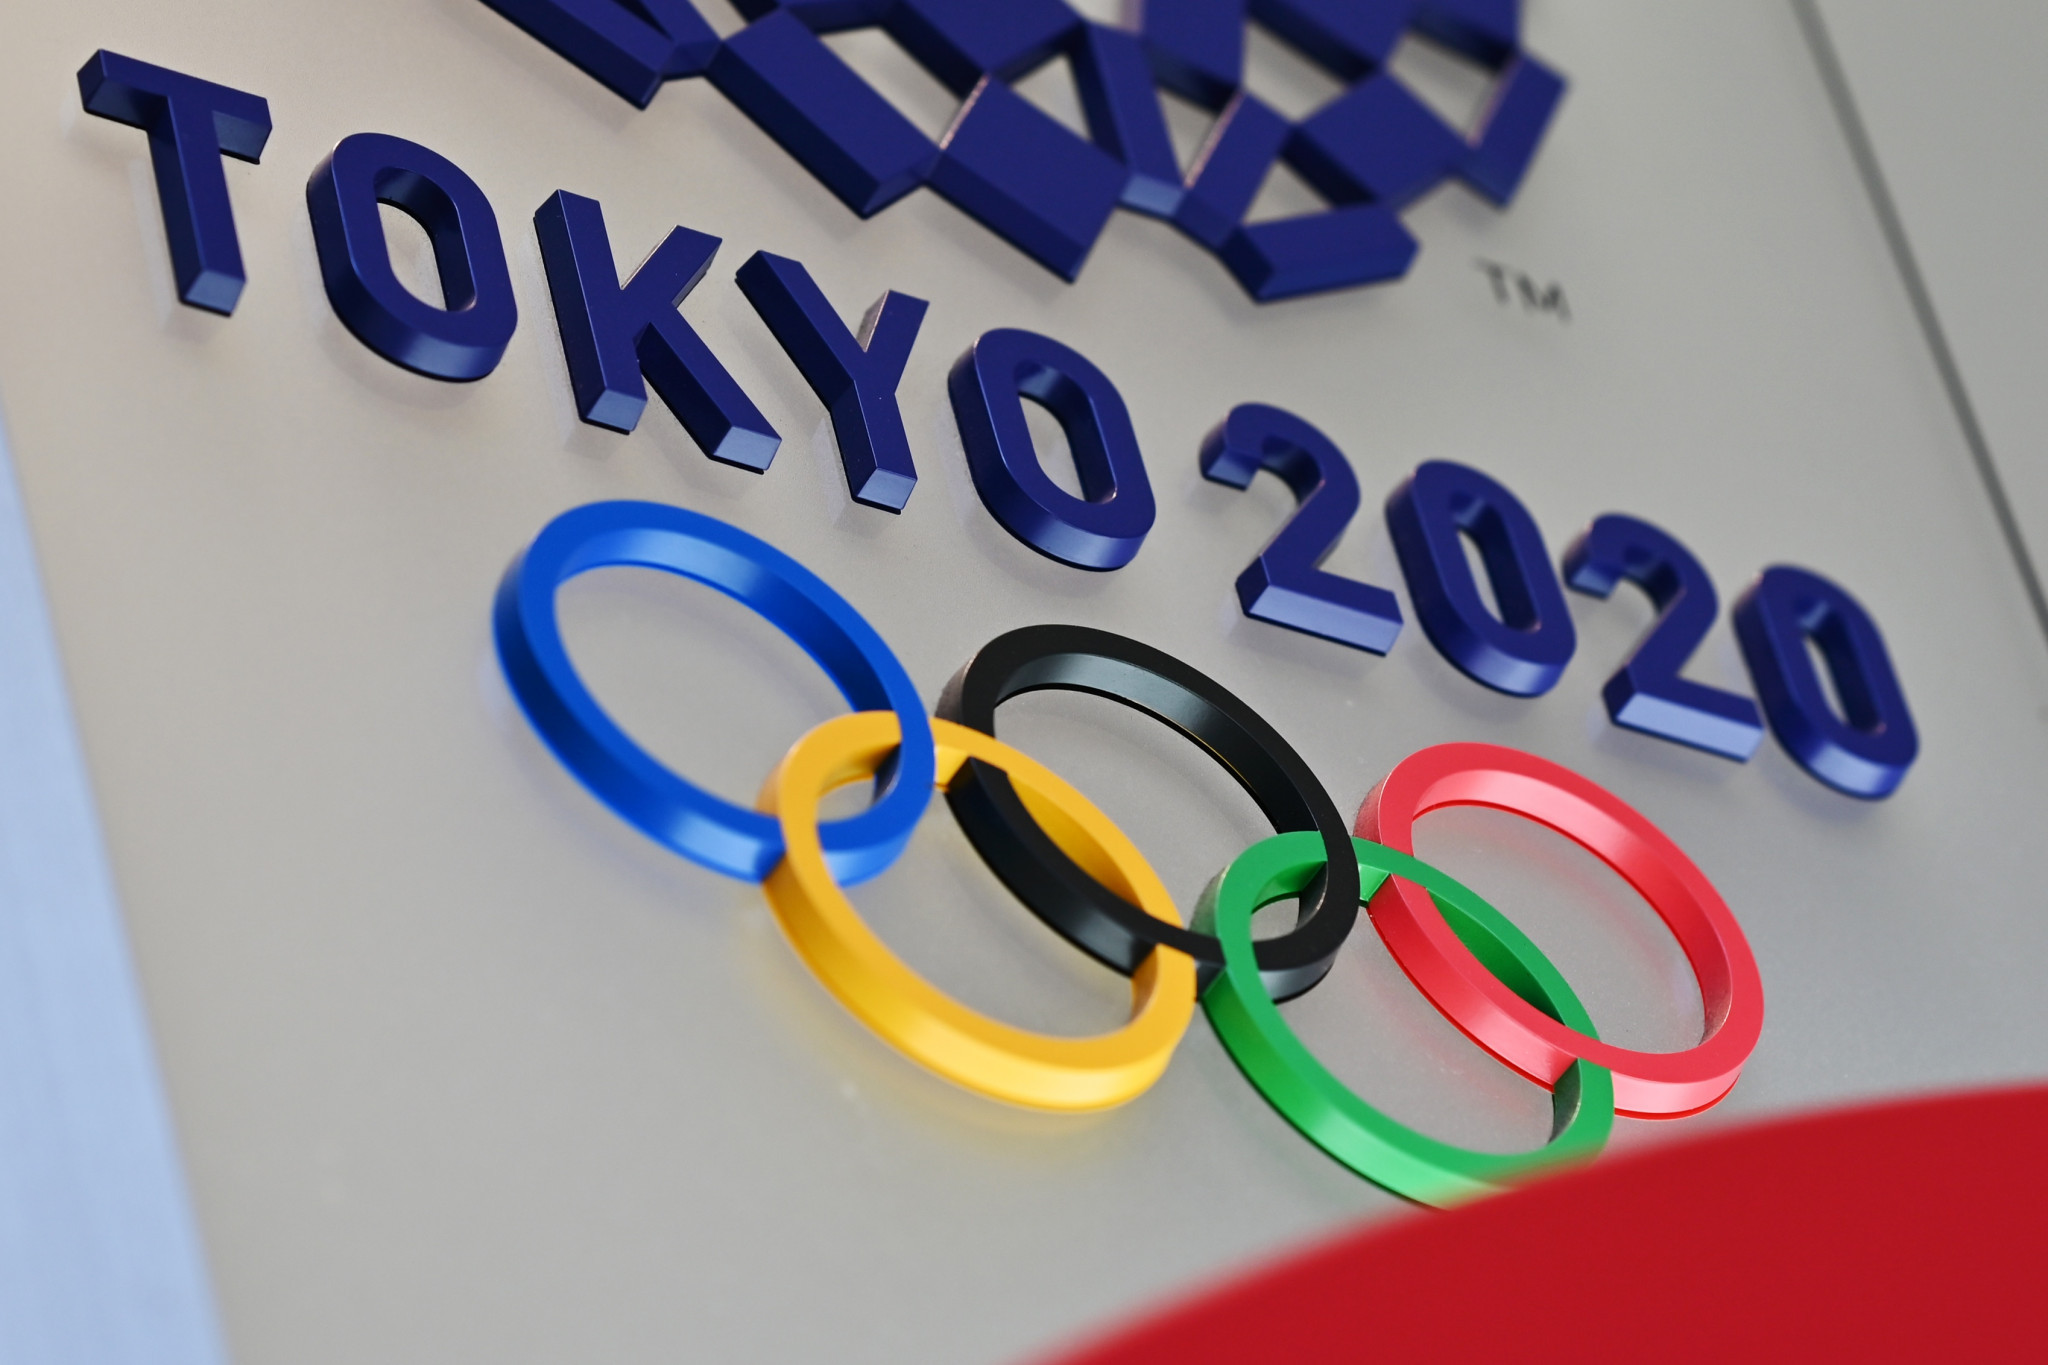 Tokyo 2020 organisers may require new office space following postponement ©Getty Images